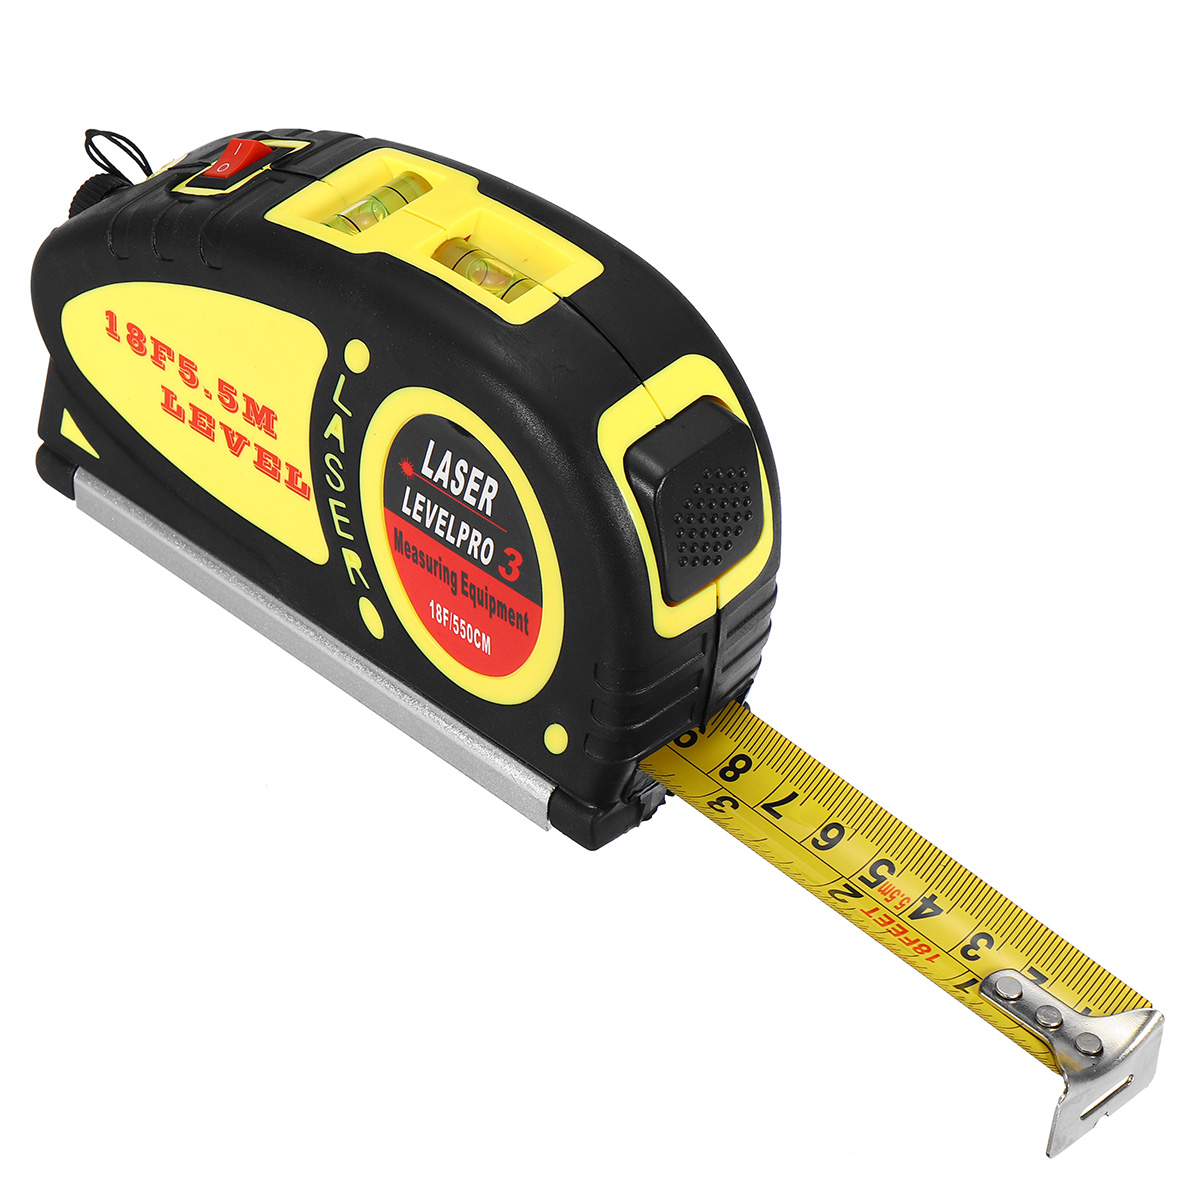 Spirit Laser Level with 5.5m Measure Tape Horizontal Vertical Line Ruler Aligner